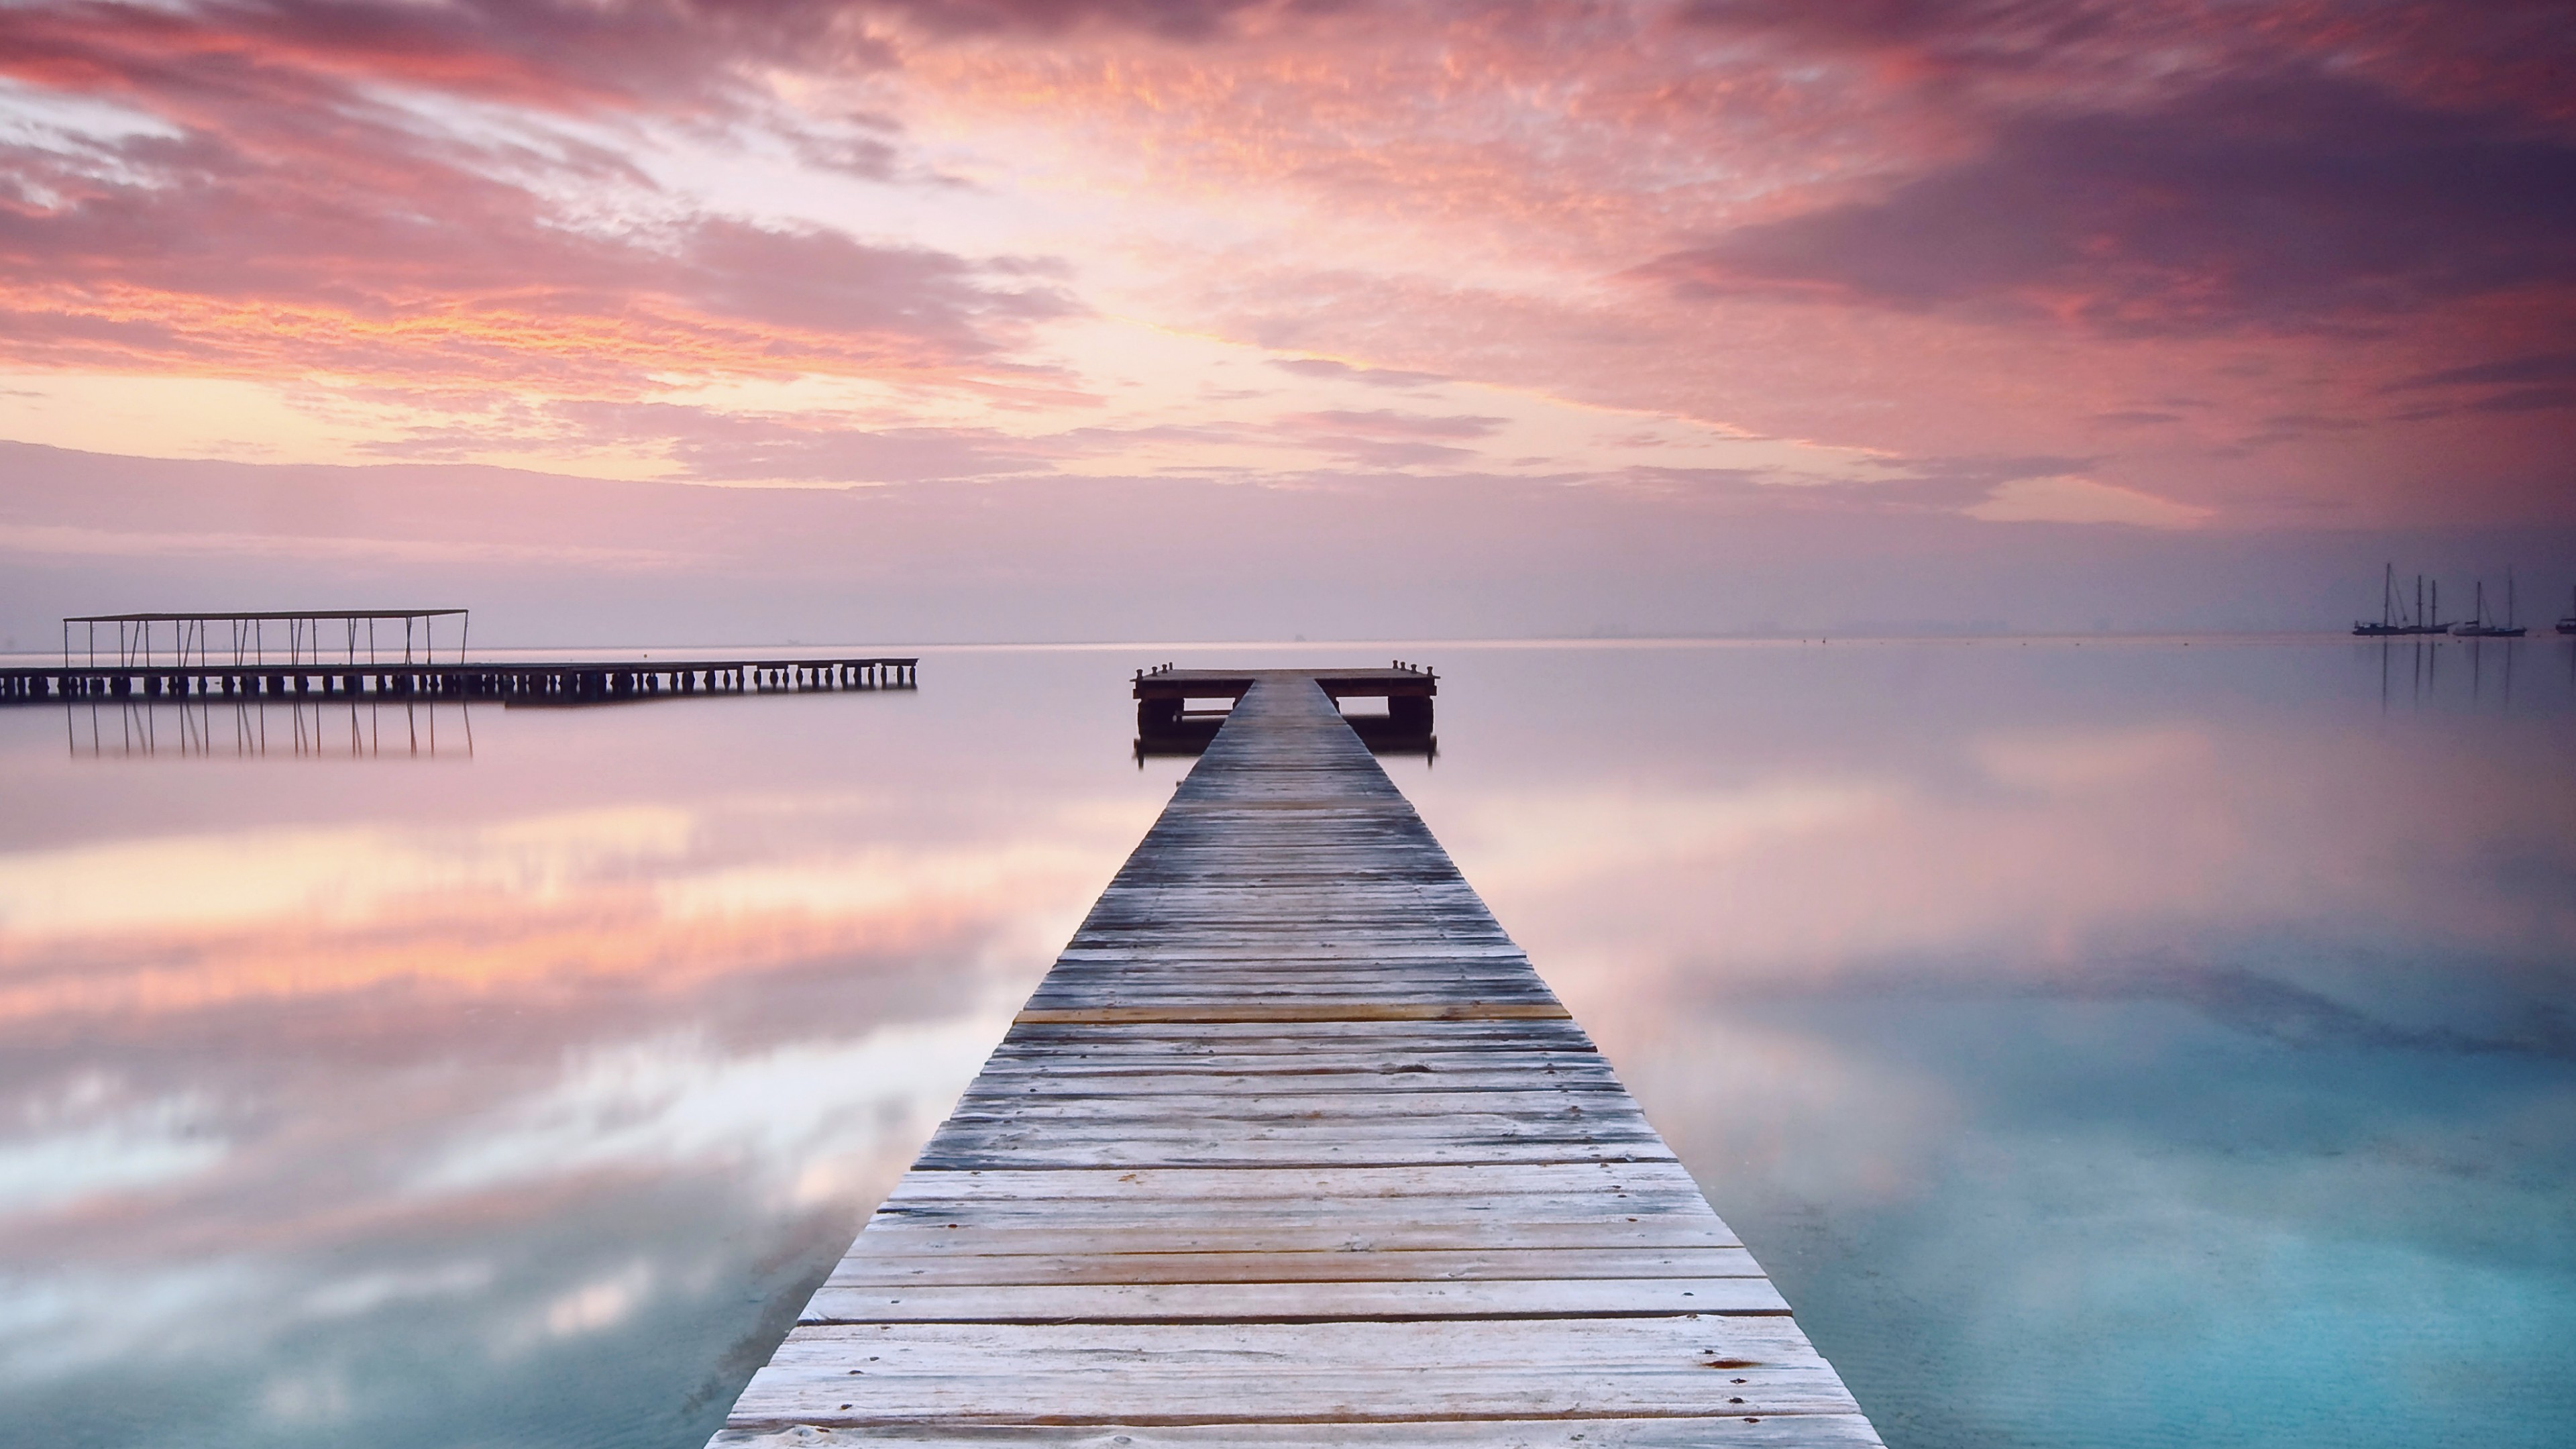 Wallpaper Spain 5k 4k Wallpaper Pink Sky Clouds Ocean